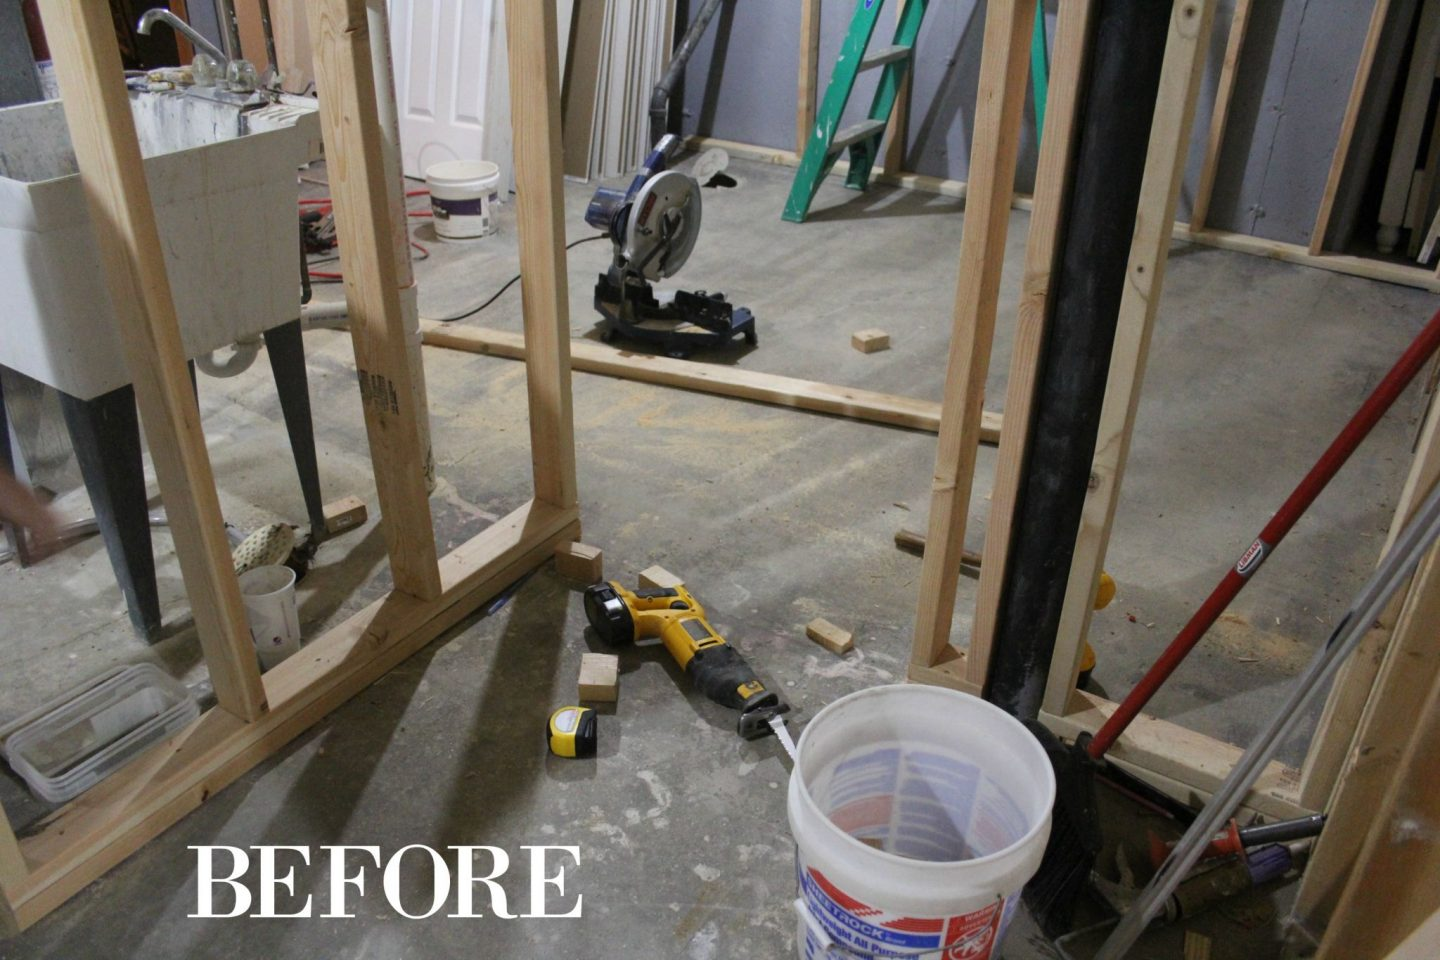 A DIY bathroom we created from scratch in our dark unfinished basement! #DIYhome #beforeandafter #bathroomdesign